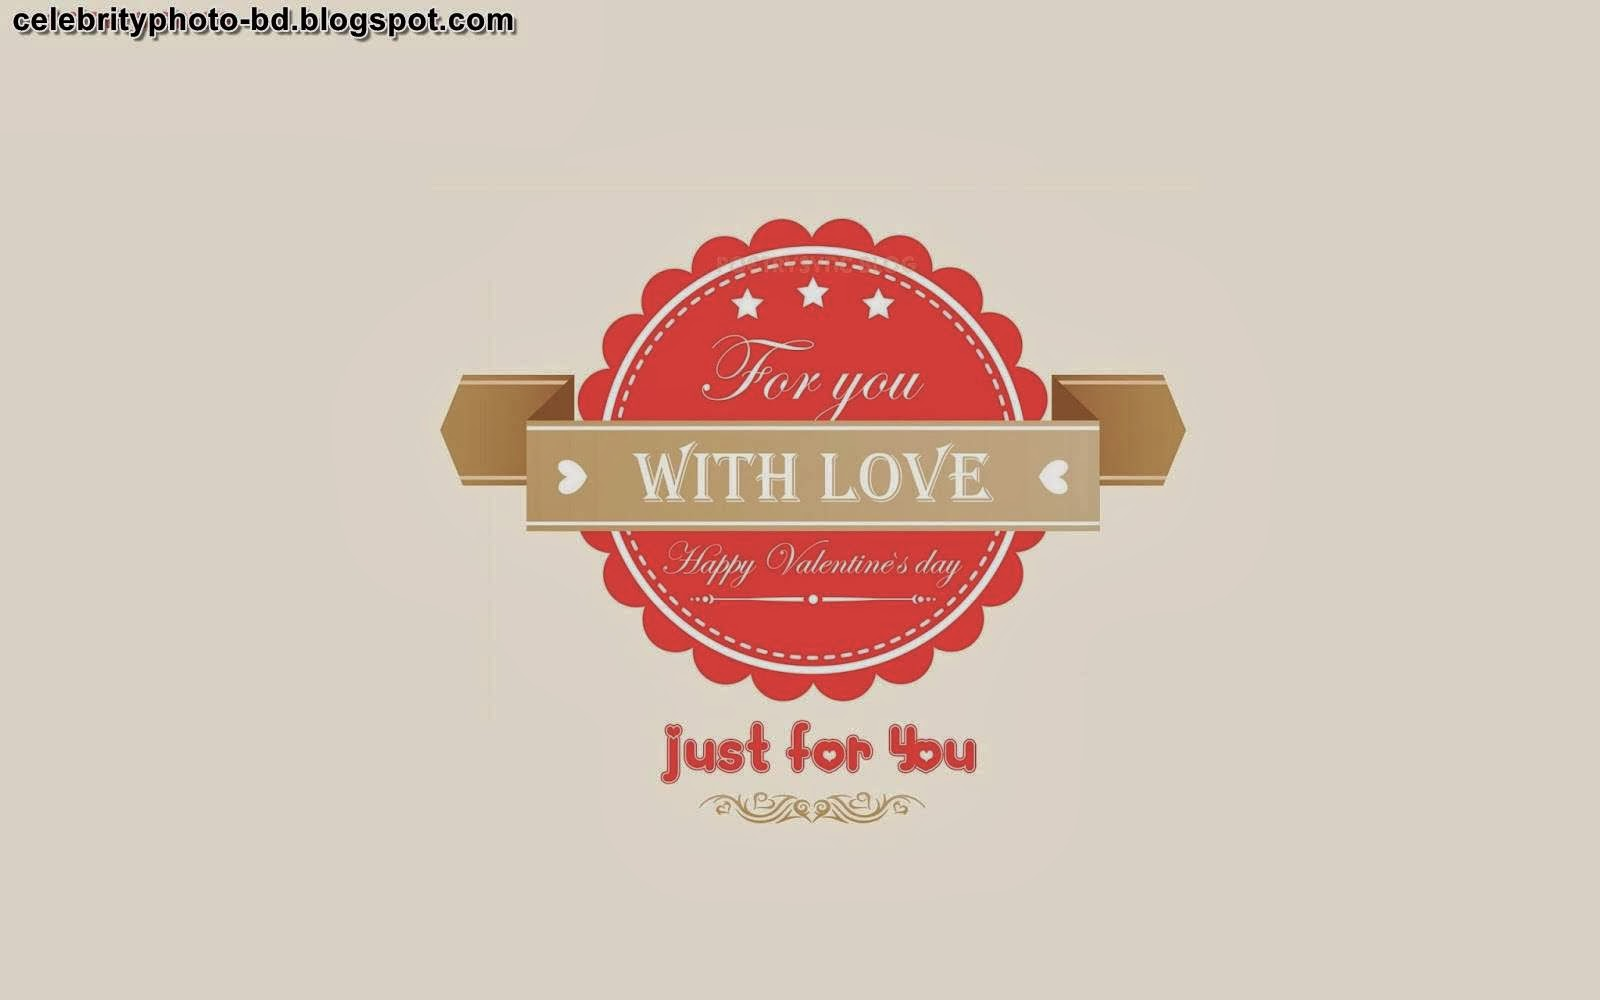 Valentines+Day+Latest+Lovely+Hearts+HD+Wallpapers+and+Wishes+Image+Cards+2014006